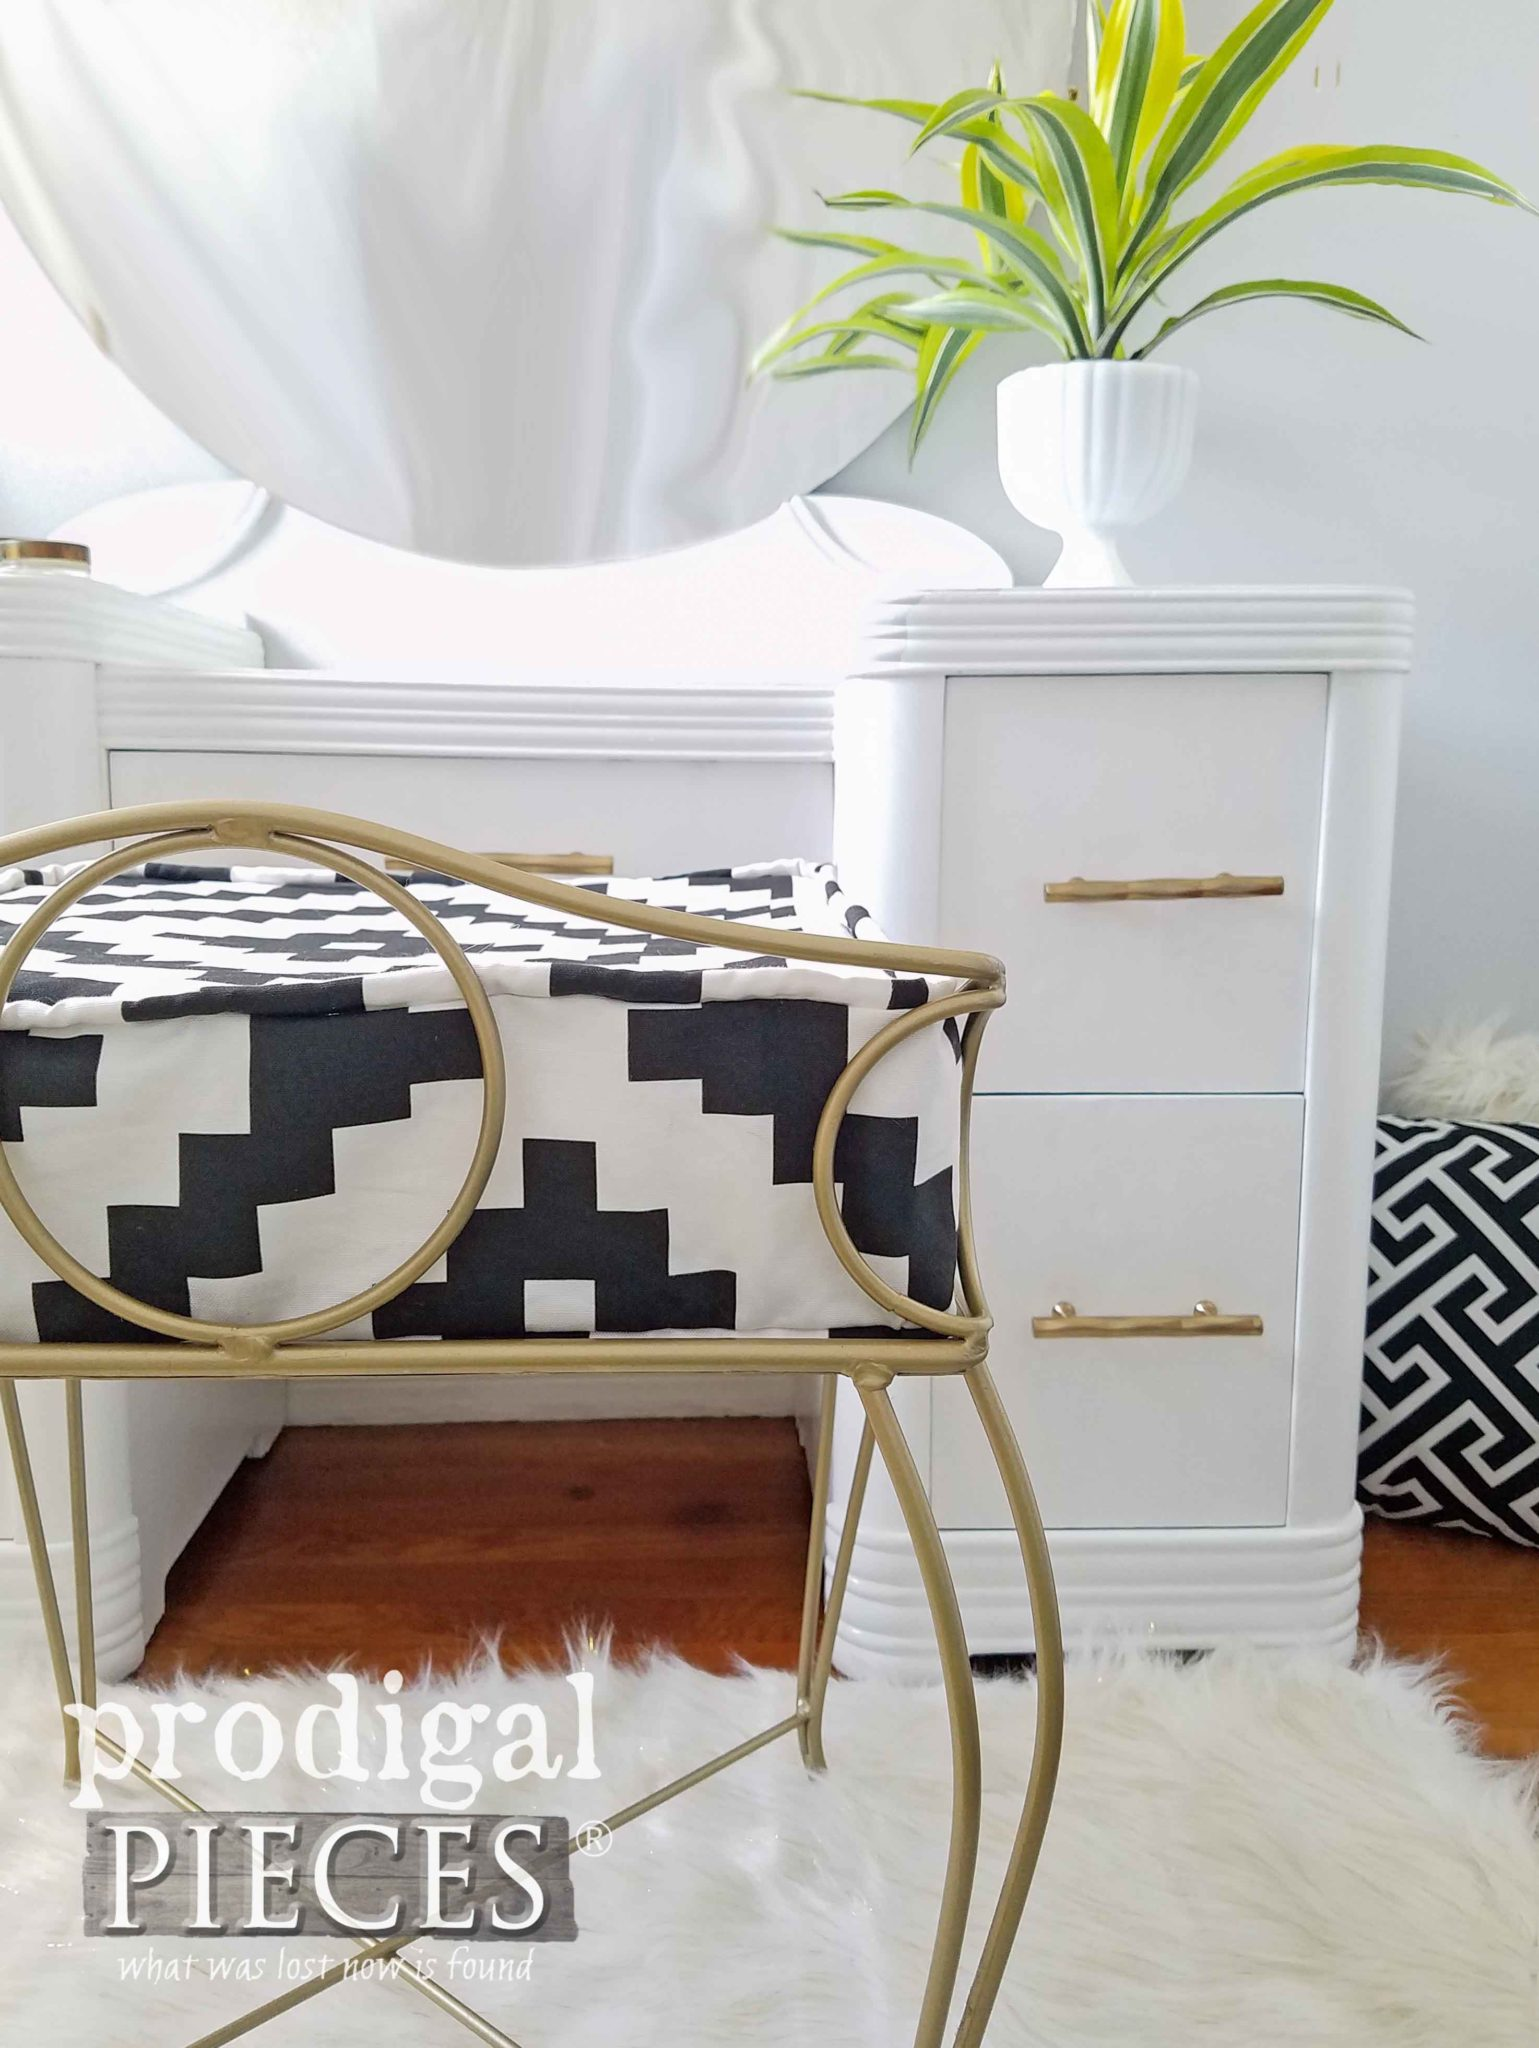 Boho Chic Bedroom Decor with this Vintage Art Deco Vanity Restored by Larissa of Prodigal Pieces | prodigalpieces.com